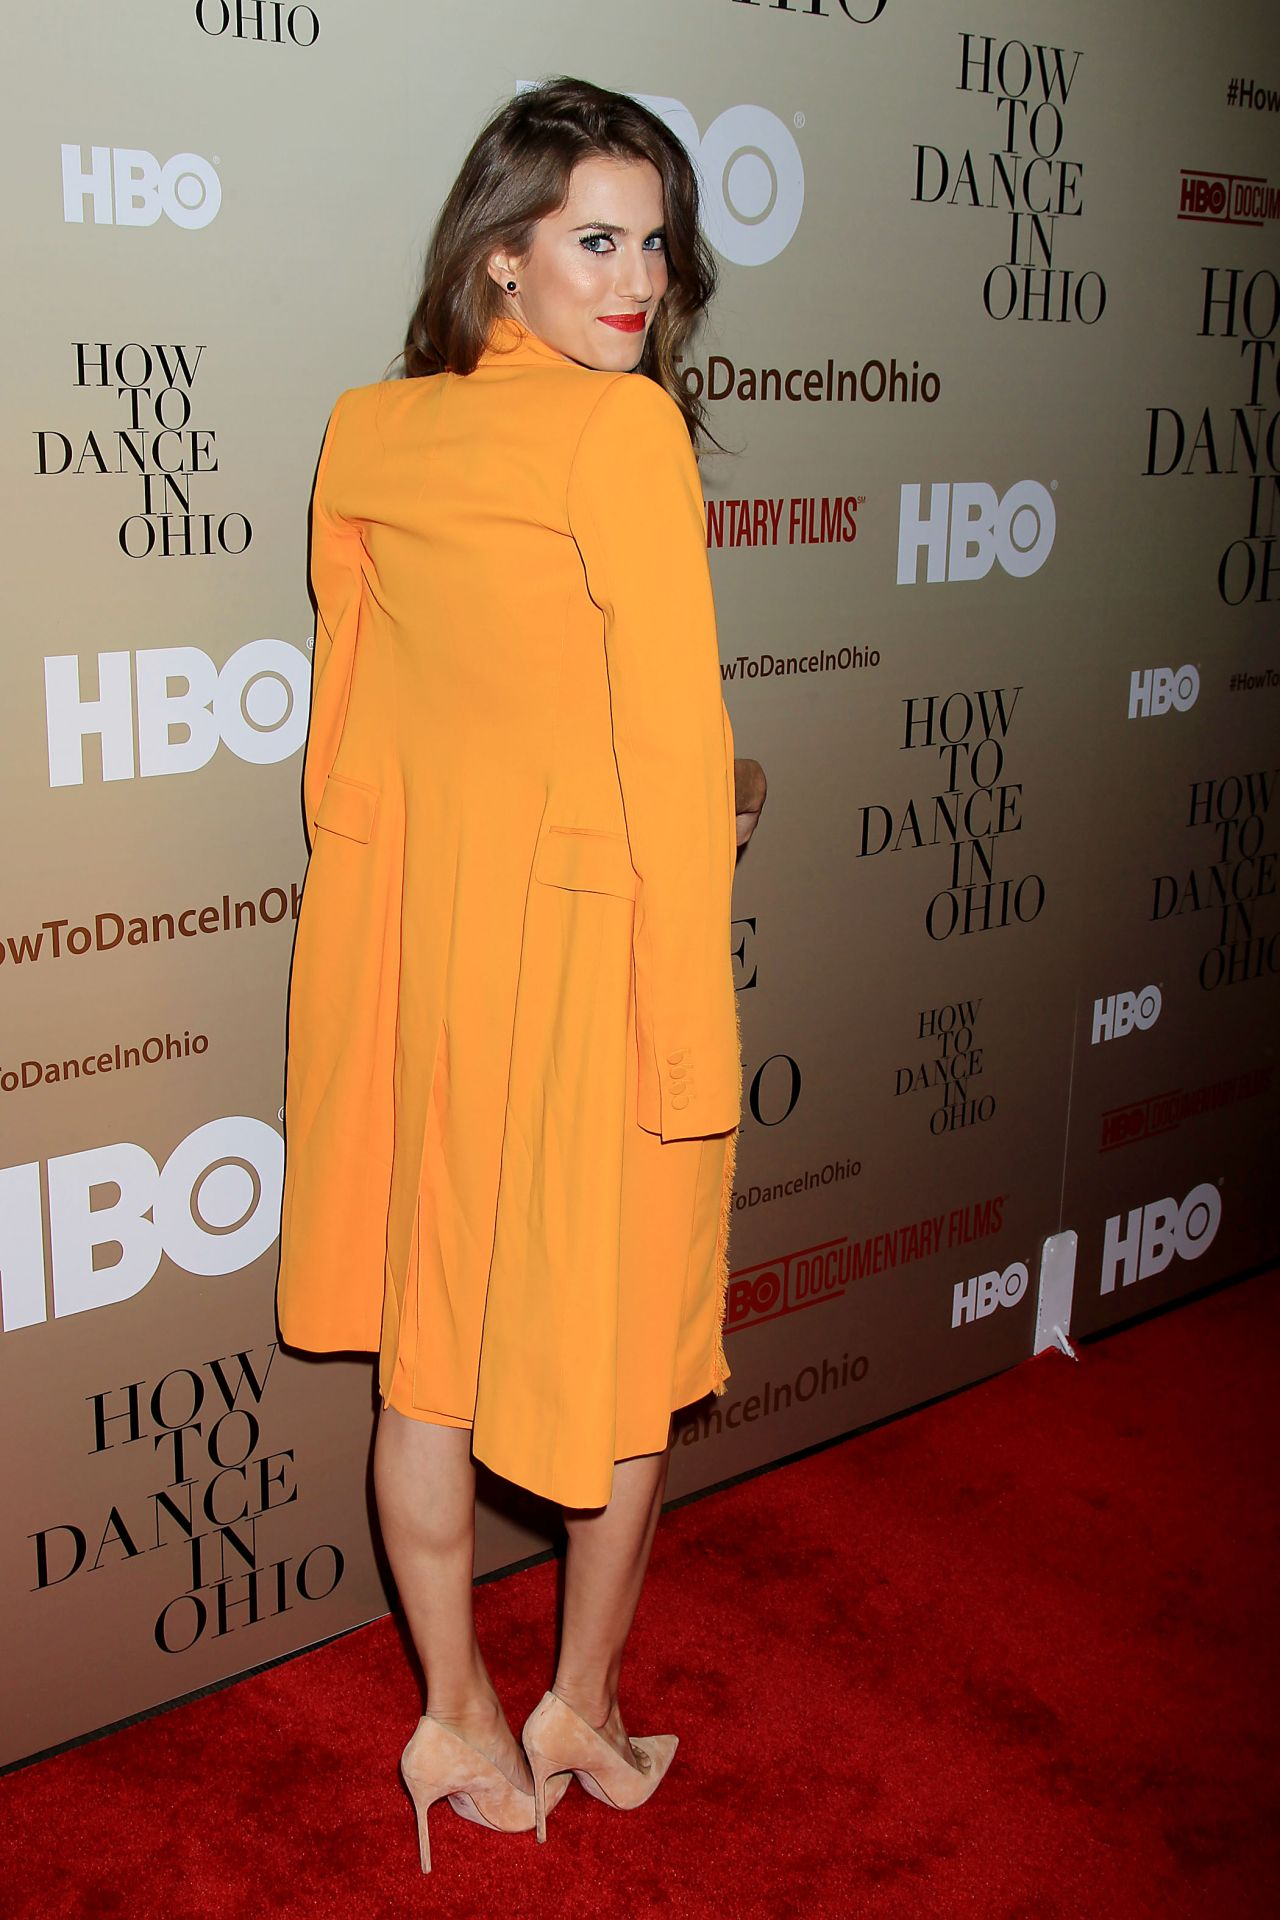 allison-williams-hbo-s-how-to-dance-in-ohio-premiere-in-new-york-city_3